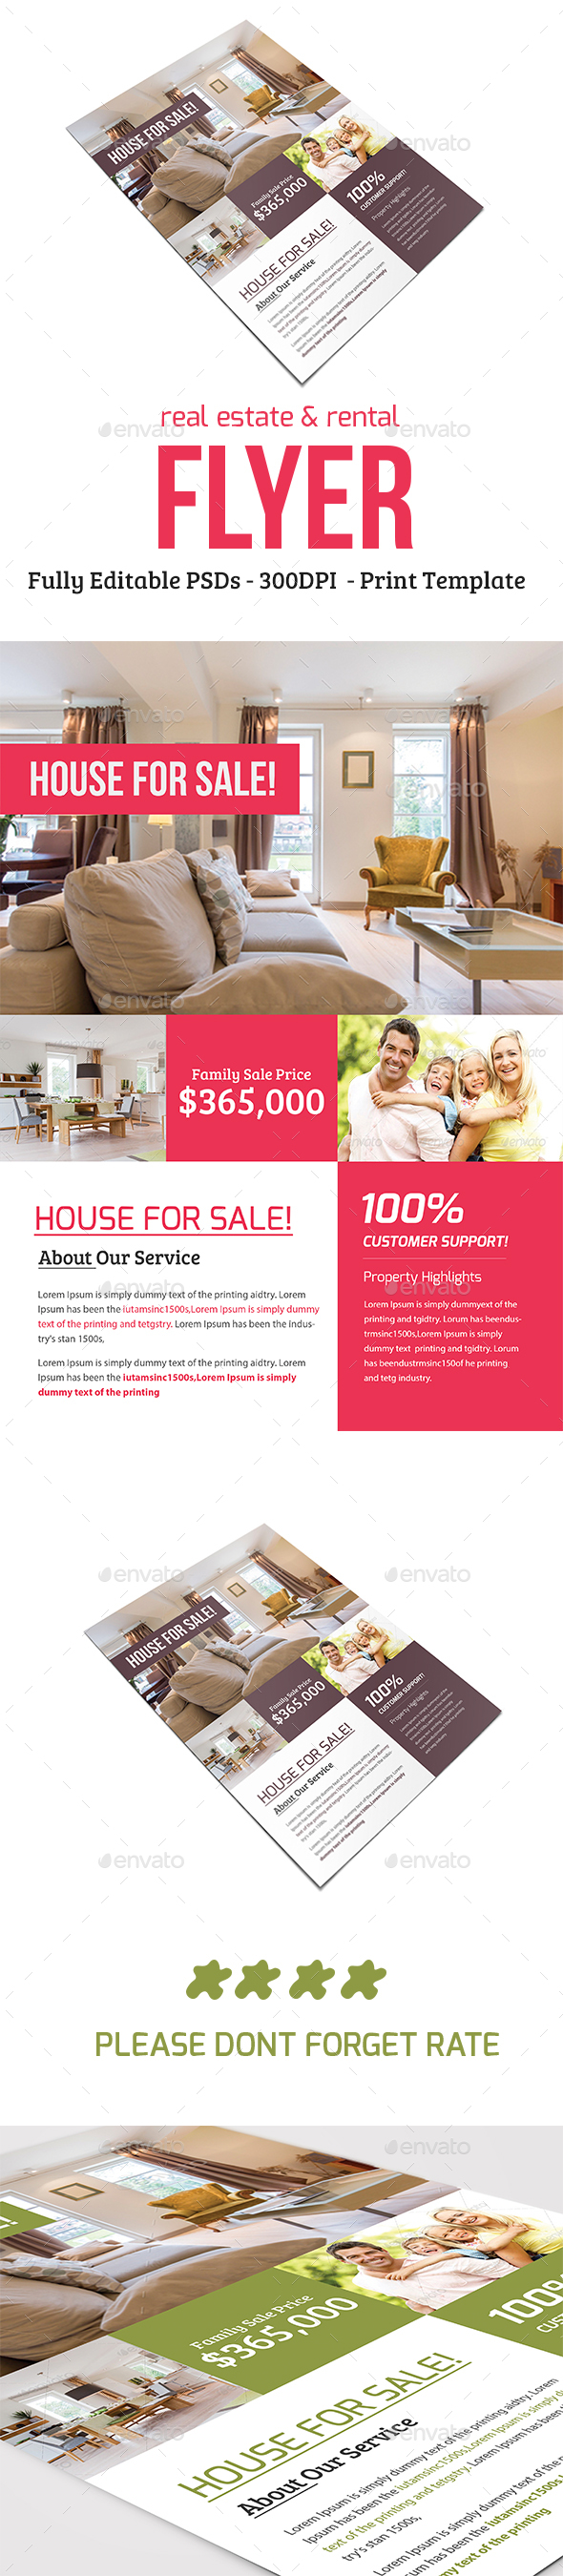 Real Estate & Rental Flyer - Commerce Flyers